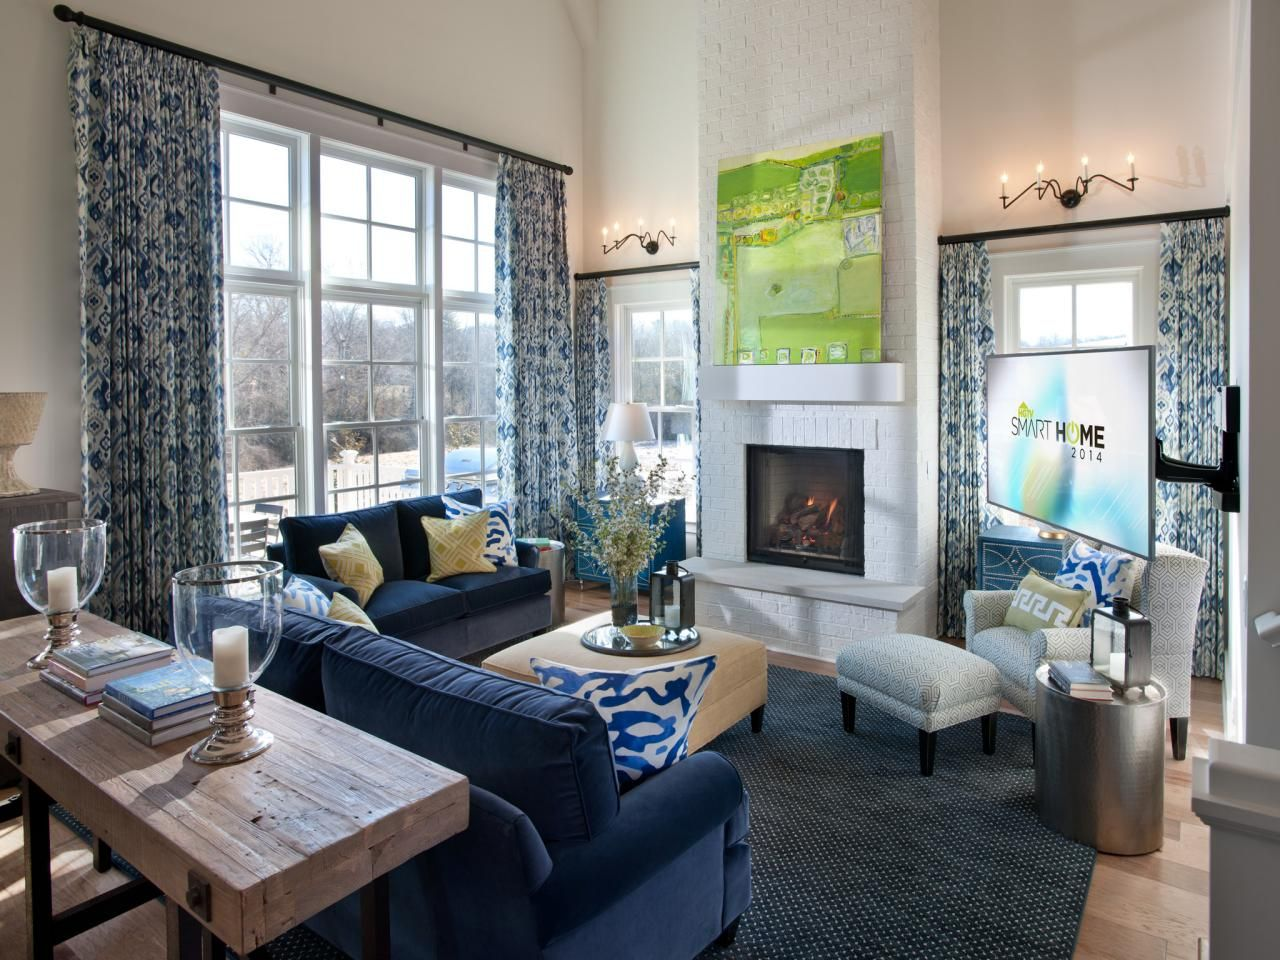 Hgtv Designs For Living Room Glamorous The 50 Hottest Pinterest Photos  Hgtv Room Pictures And Design Ideas